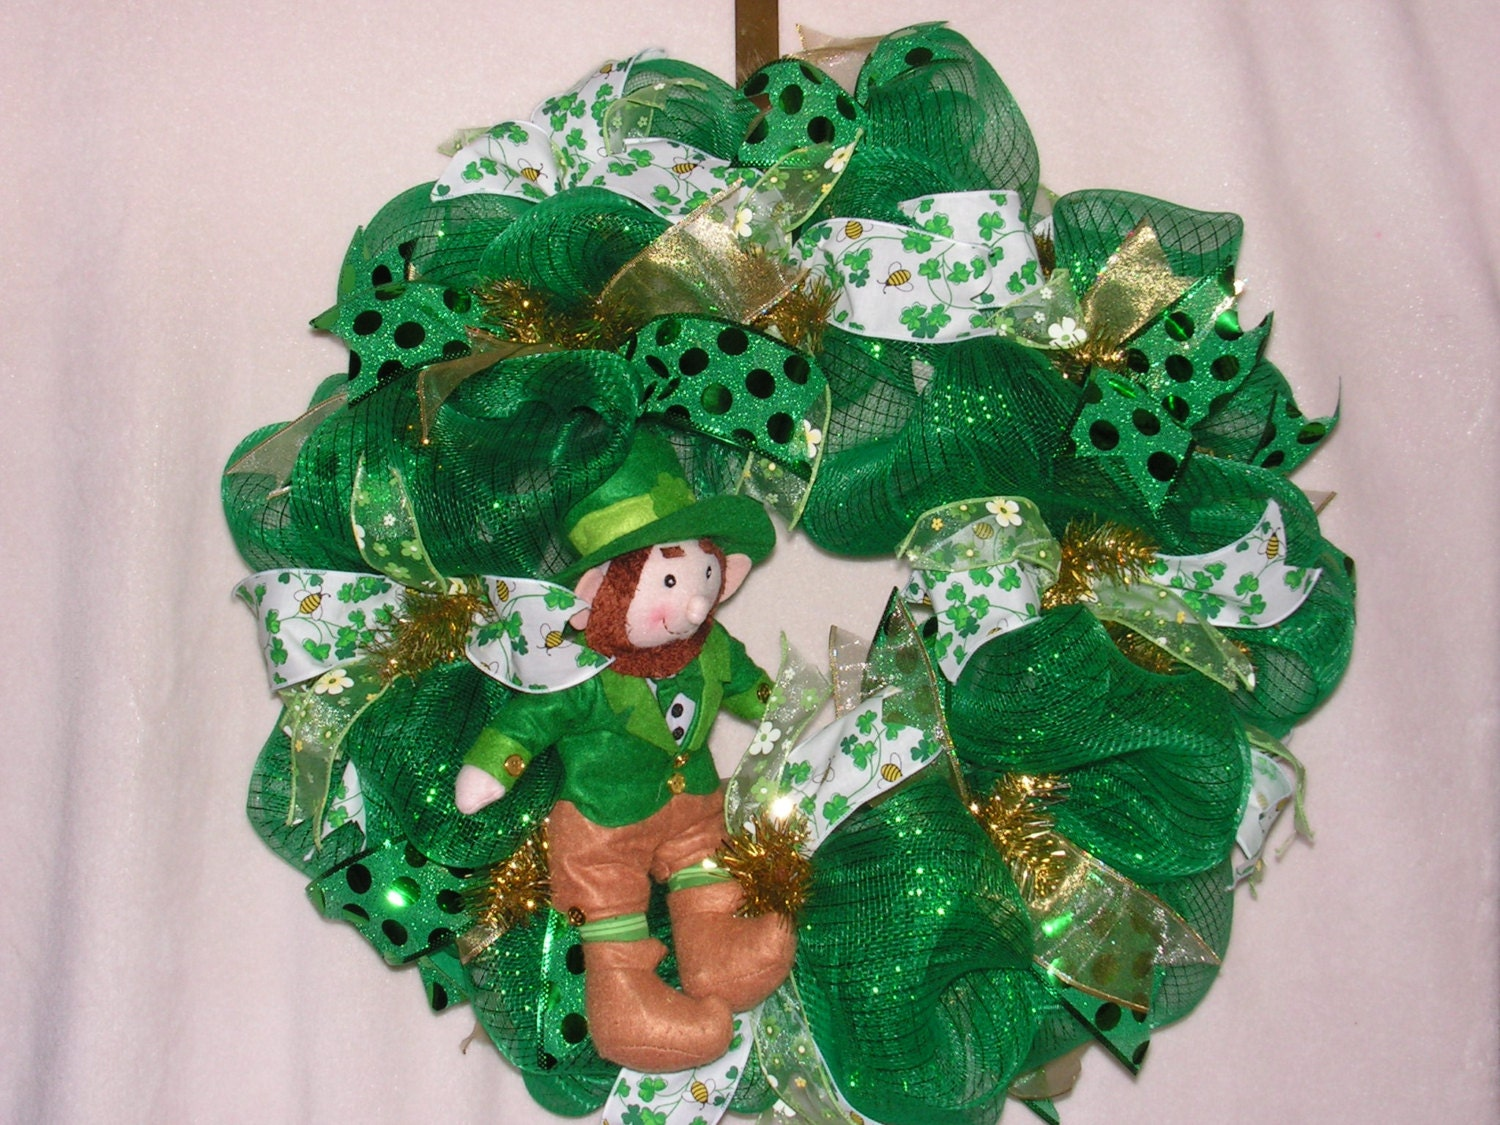 deco mesh st patrick 39 s day wreath leprechaun by wreathsbykathy. Black Bedroom Furniture Sets. Home Design Ideas